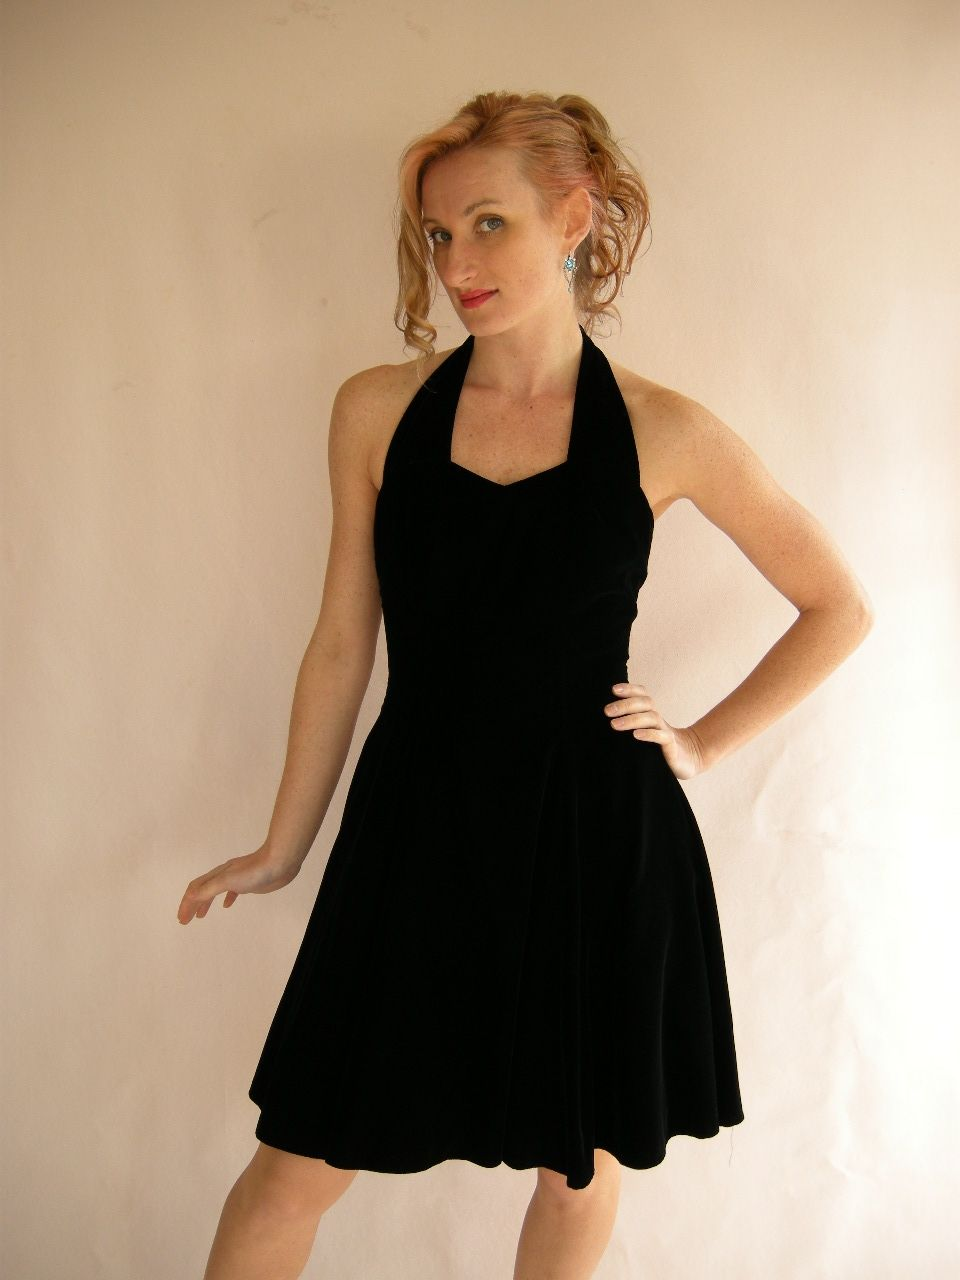 Images of Party Black Dresses - Reikian